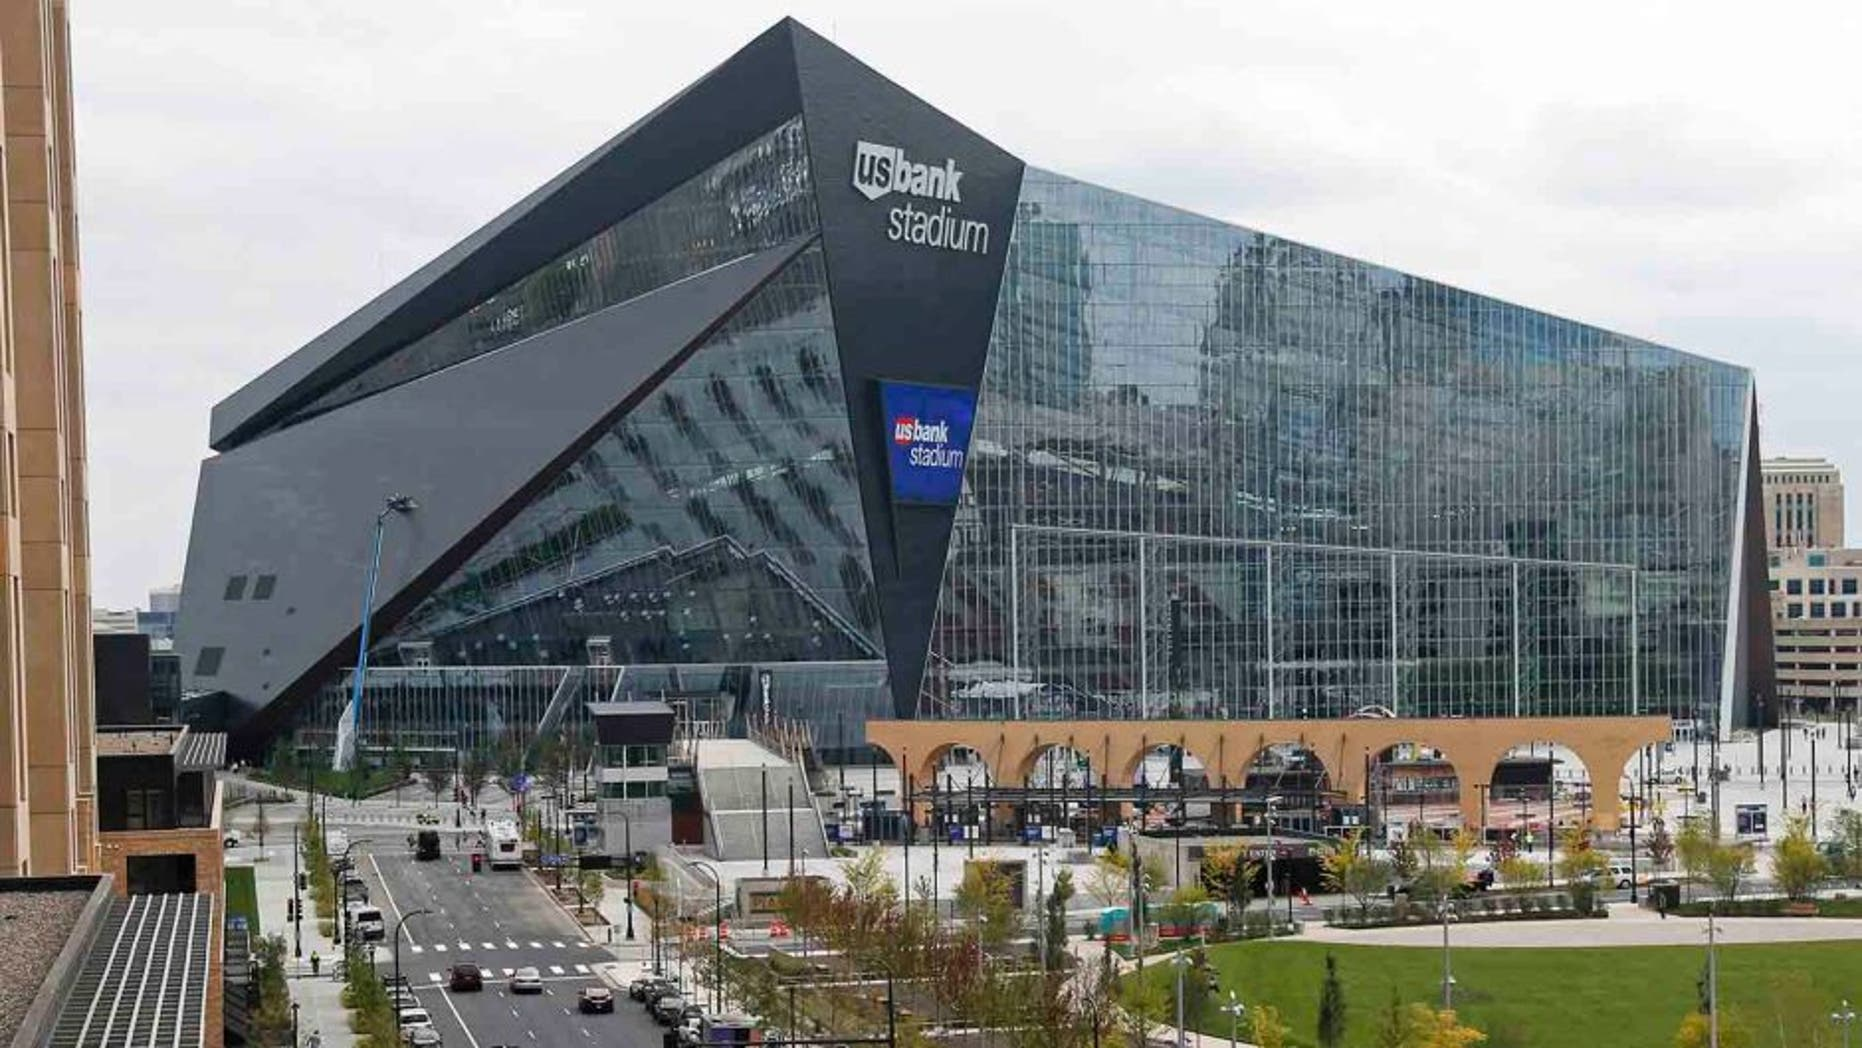 In this photo taken Thursday, Sept. 15, 2016, US Bank Stadium, the new home of the NFL Minnesota Vikings football team, is shown in Minneapolis